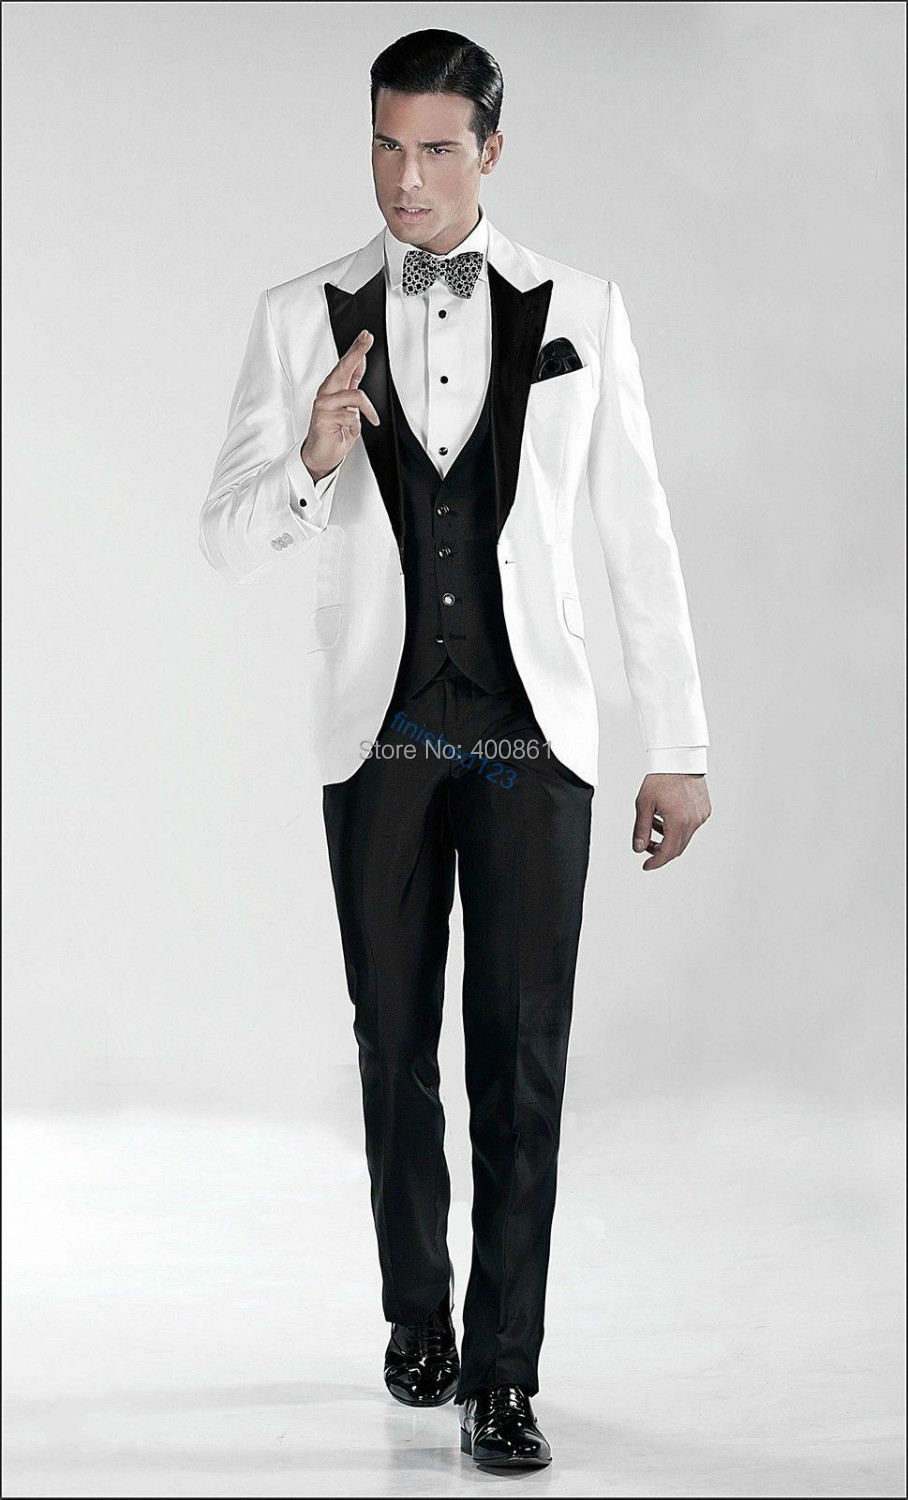 Modest Groom Tuxedos Suit Groomsman Formal Prom Dresses Business Suit (Jacket+Pants+Vest+Tie+Kerchief) OK:1245